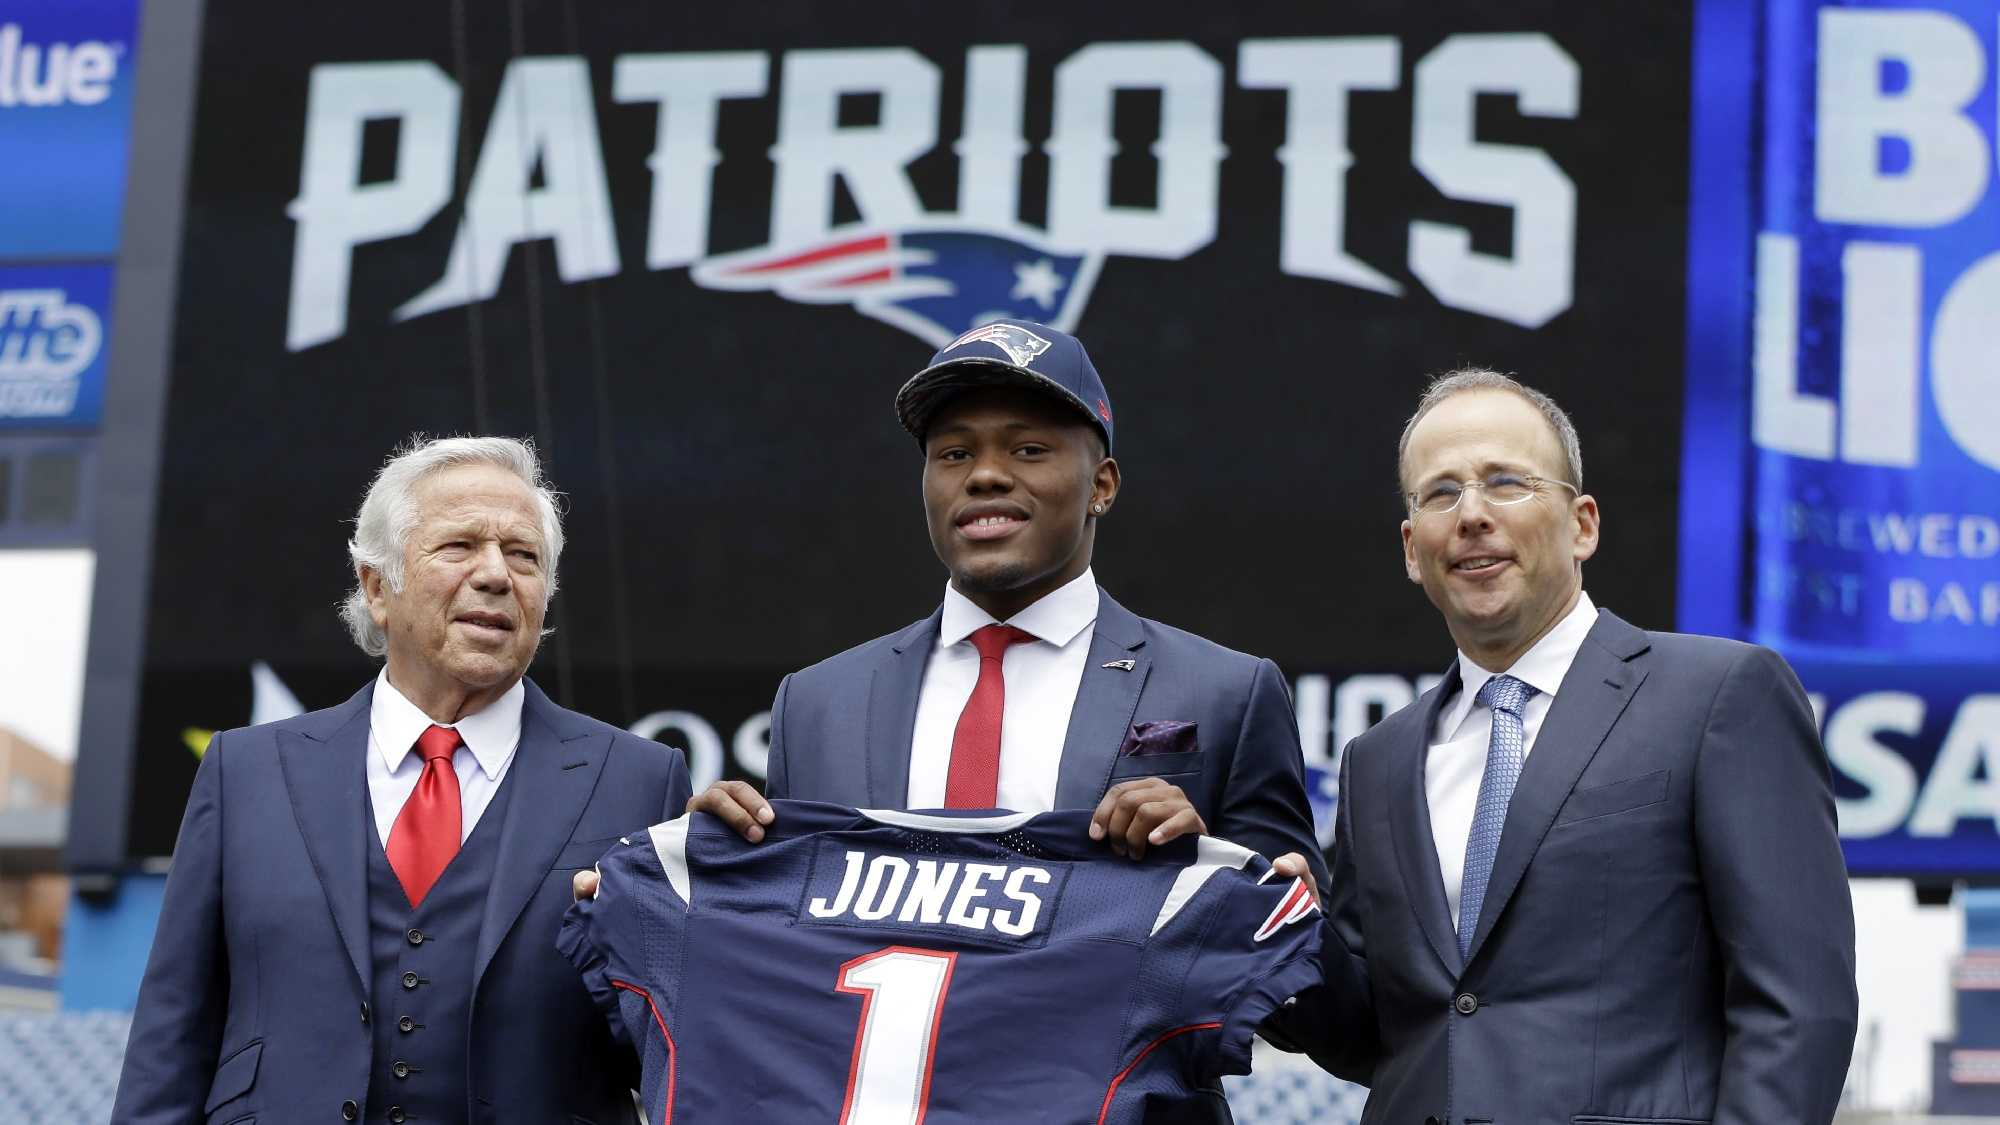 New England Patriots football top draft pick, Cyrus Jones, is introduced by team owner Robert Kraft, left, and team president Jonathan Kraft, right, at Gillette Stadium, Friday, May 6, 2016, in Foxborough, Mass.